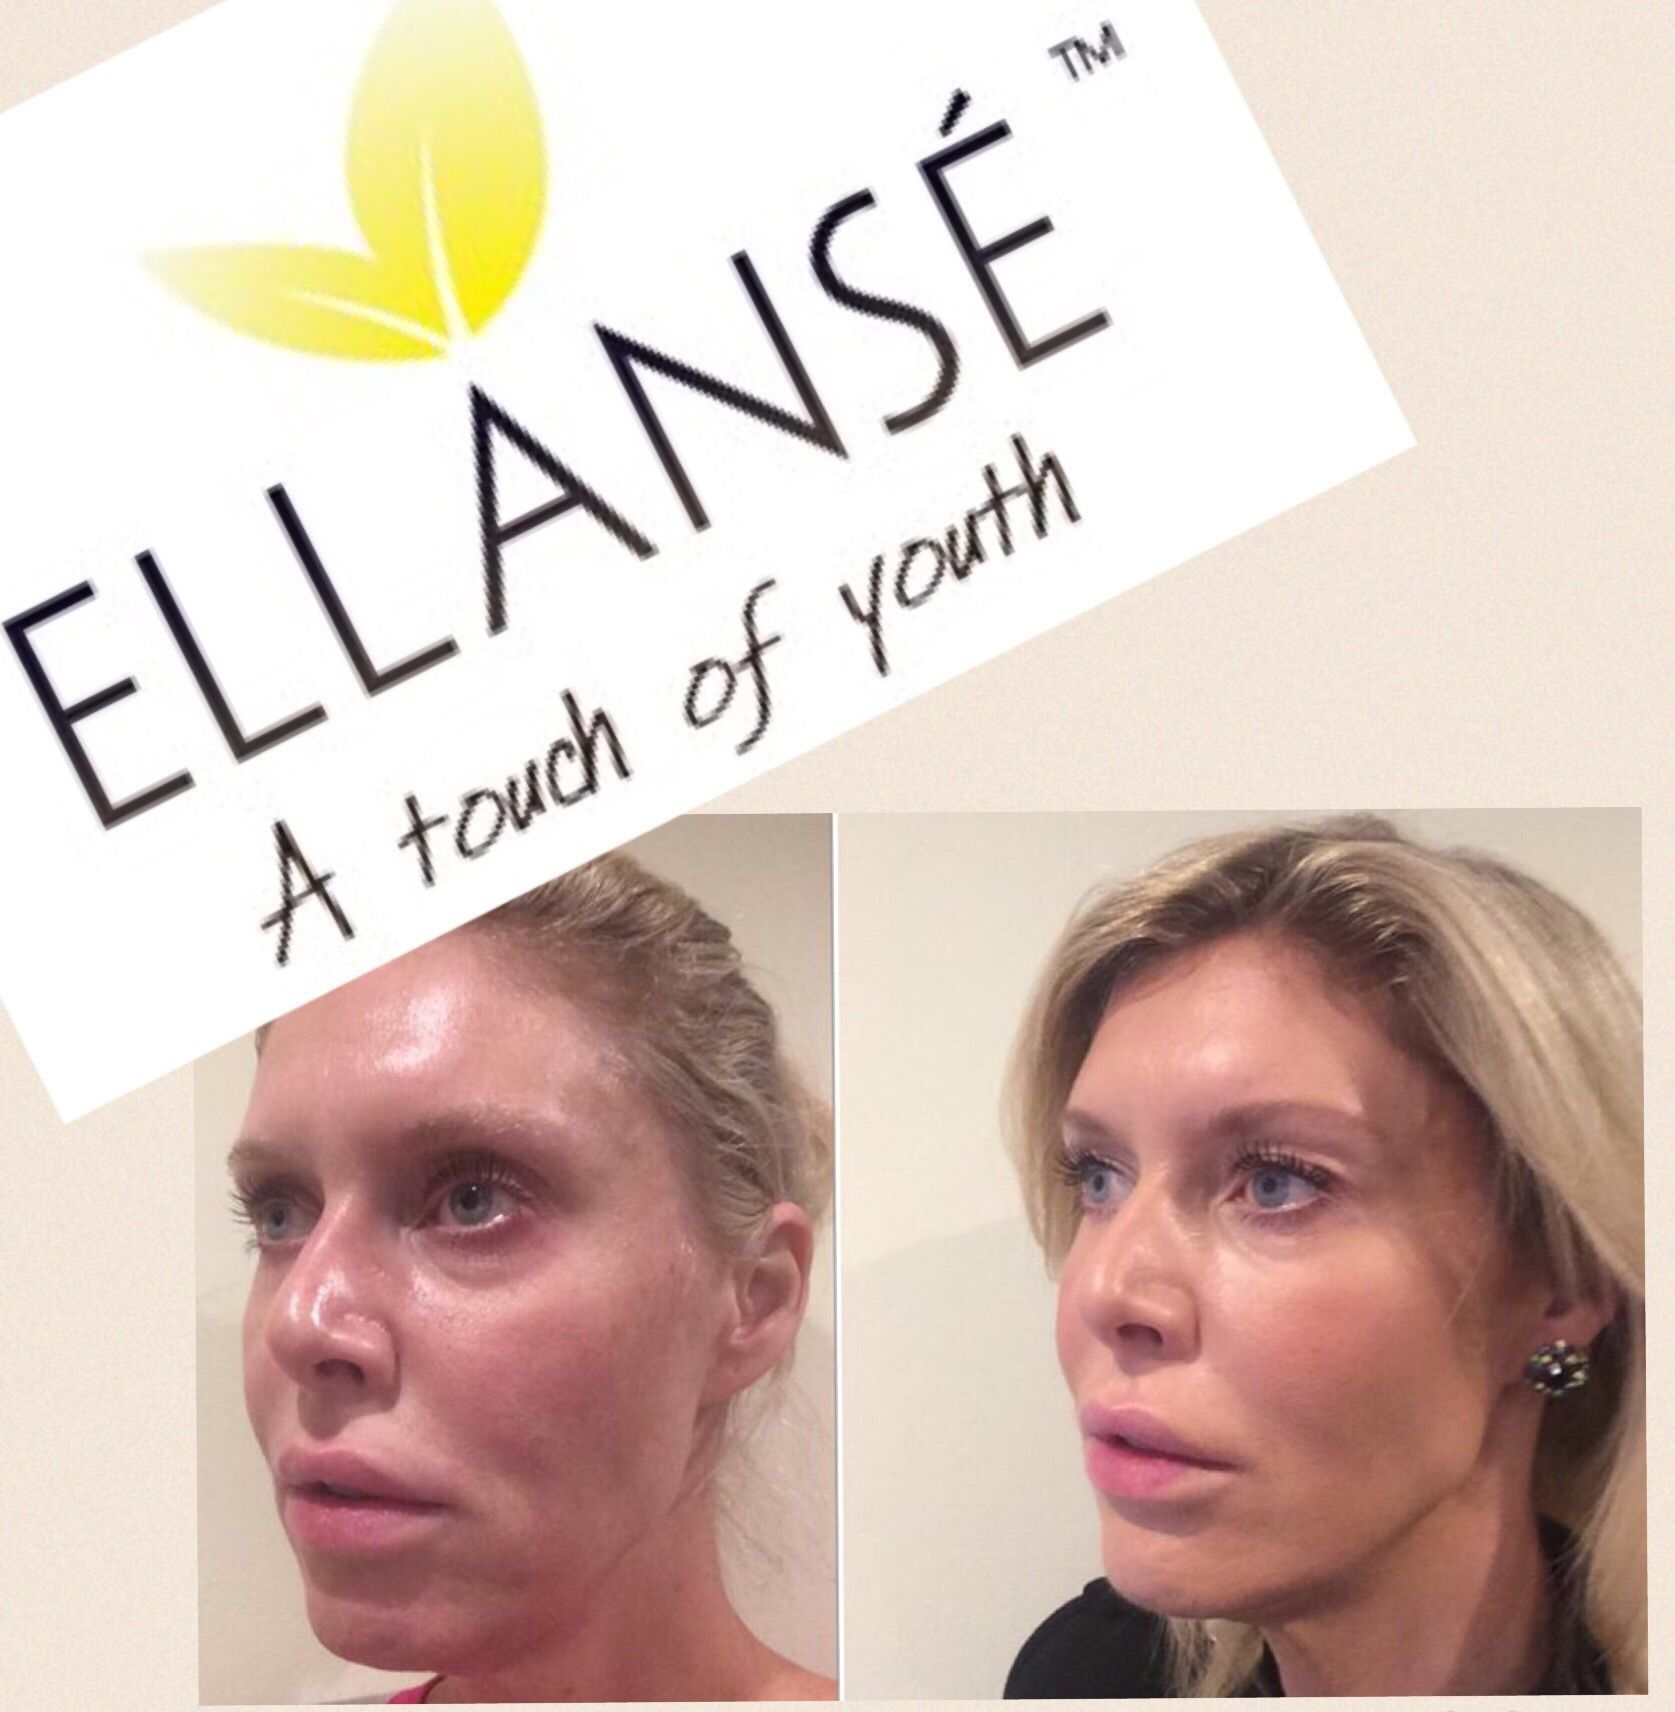 Ellanse is the perfect dermal filler with amazing natural